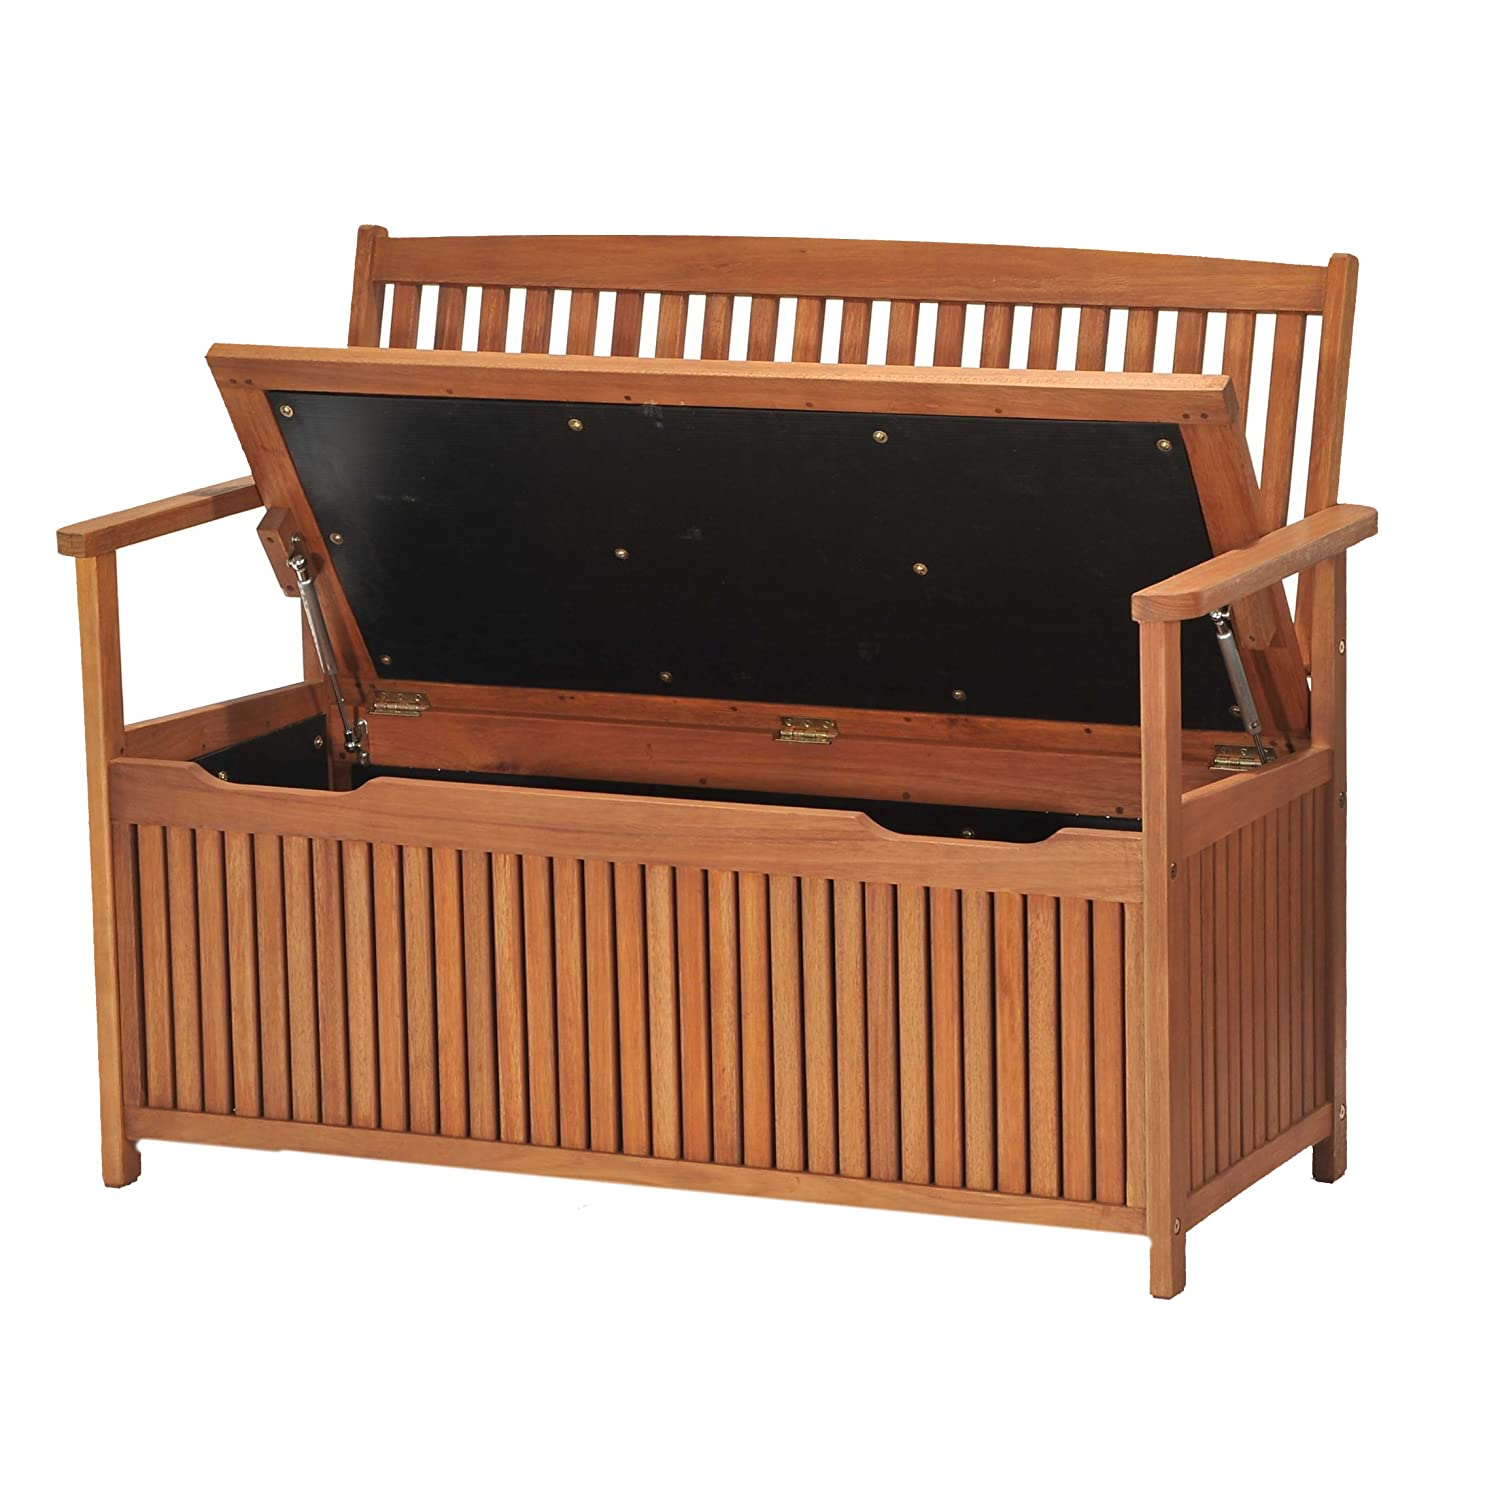 New Eucalyptus Wood Outdoor Storage Bench Wooden Garden Furniture Seating Seat Ebay